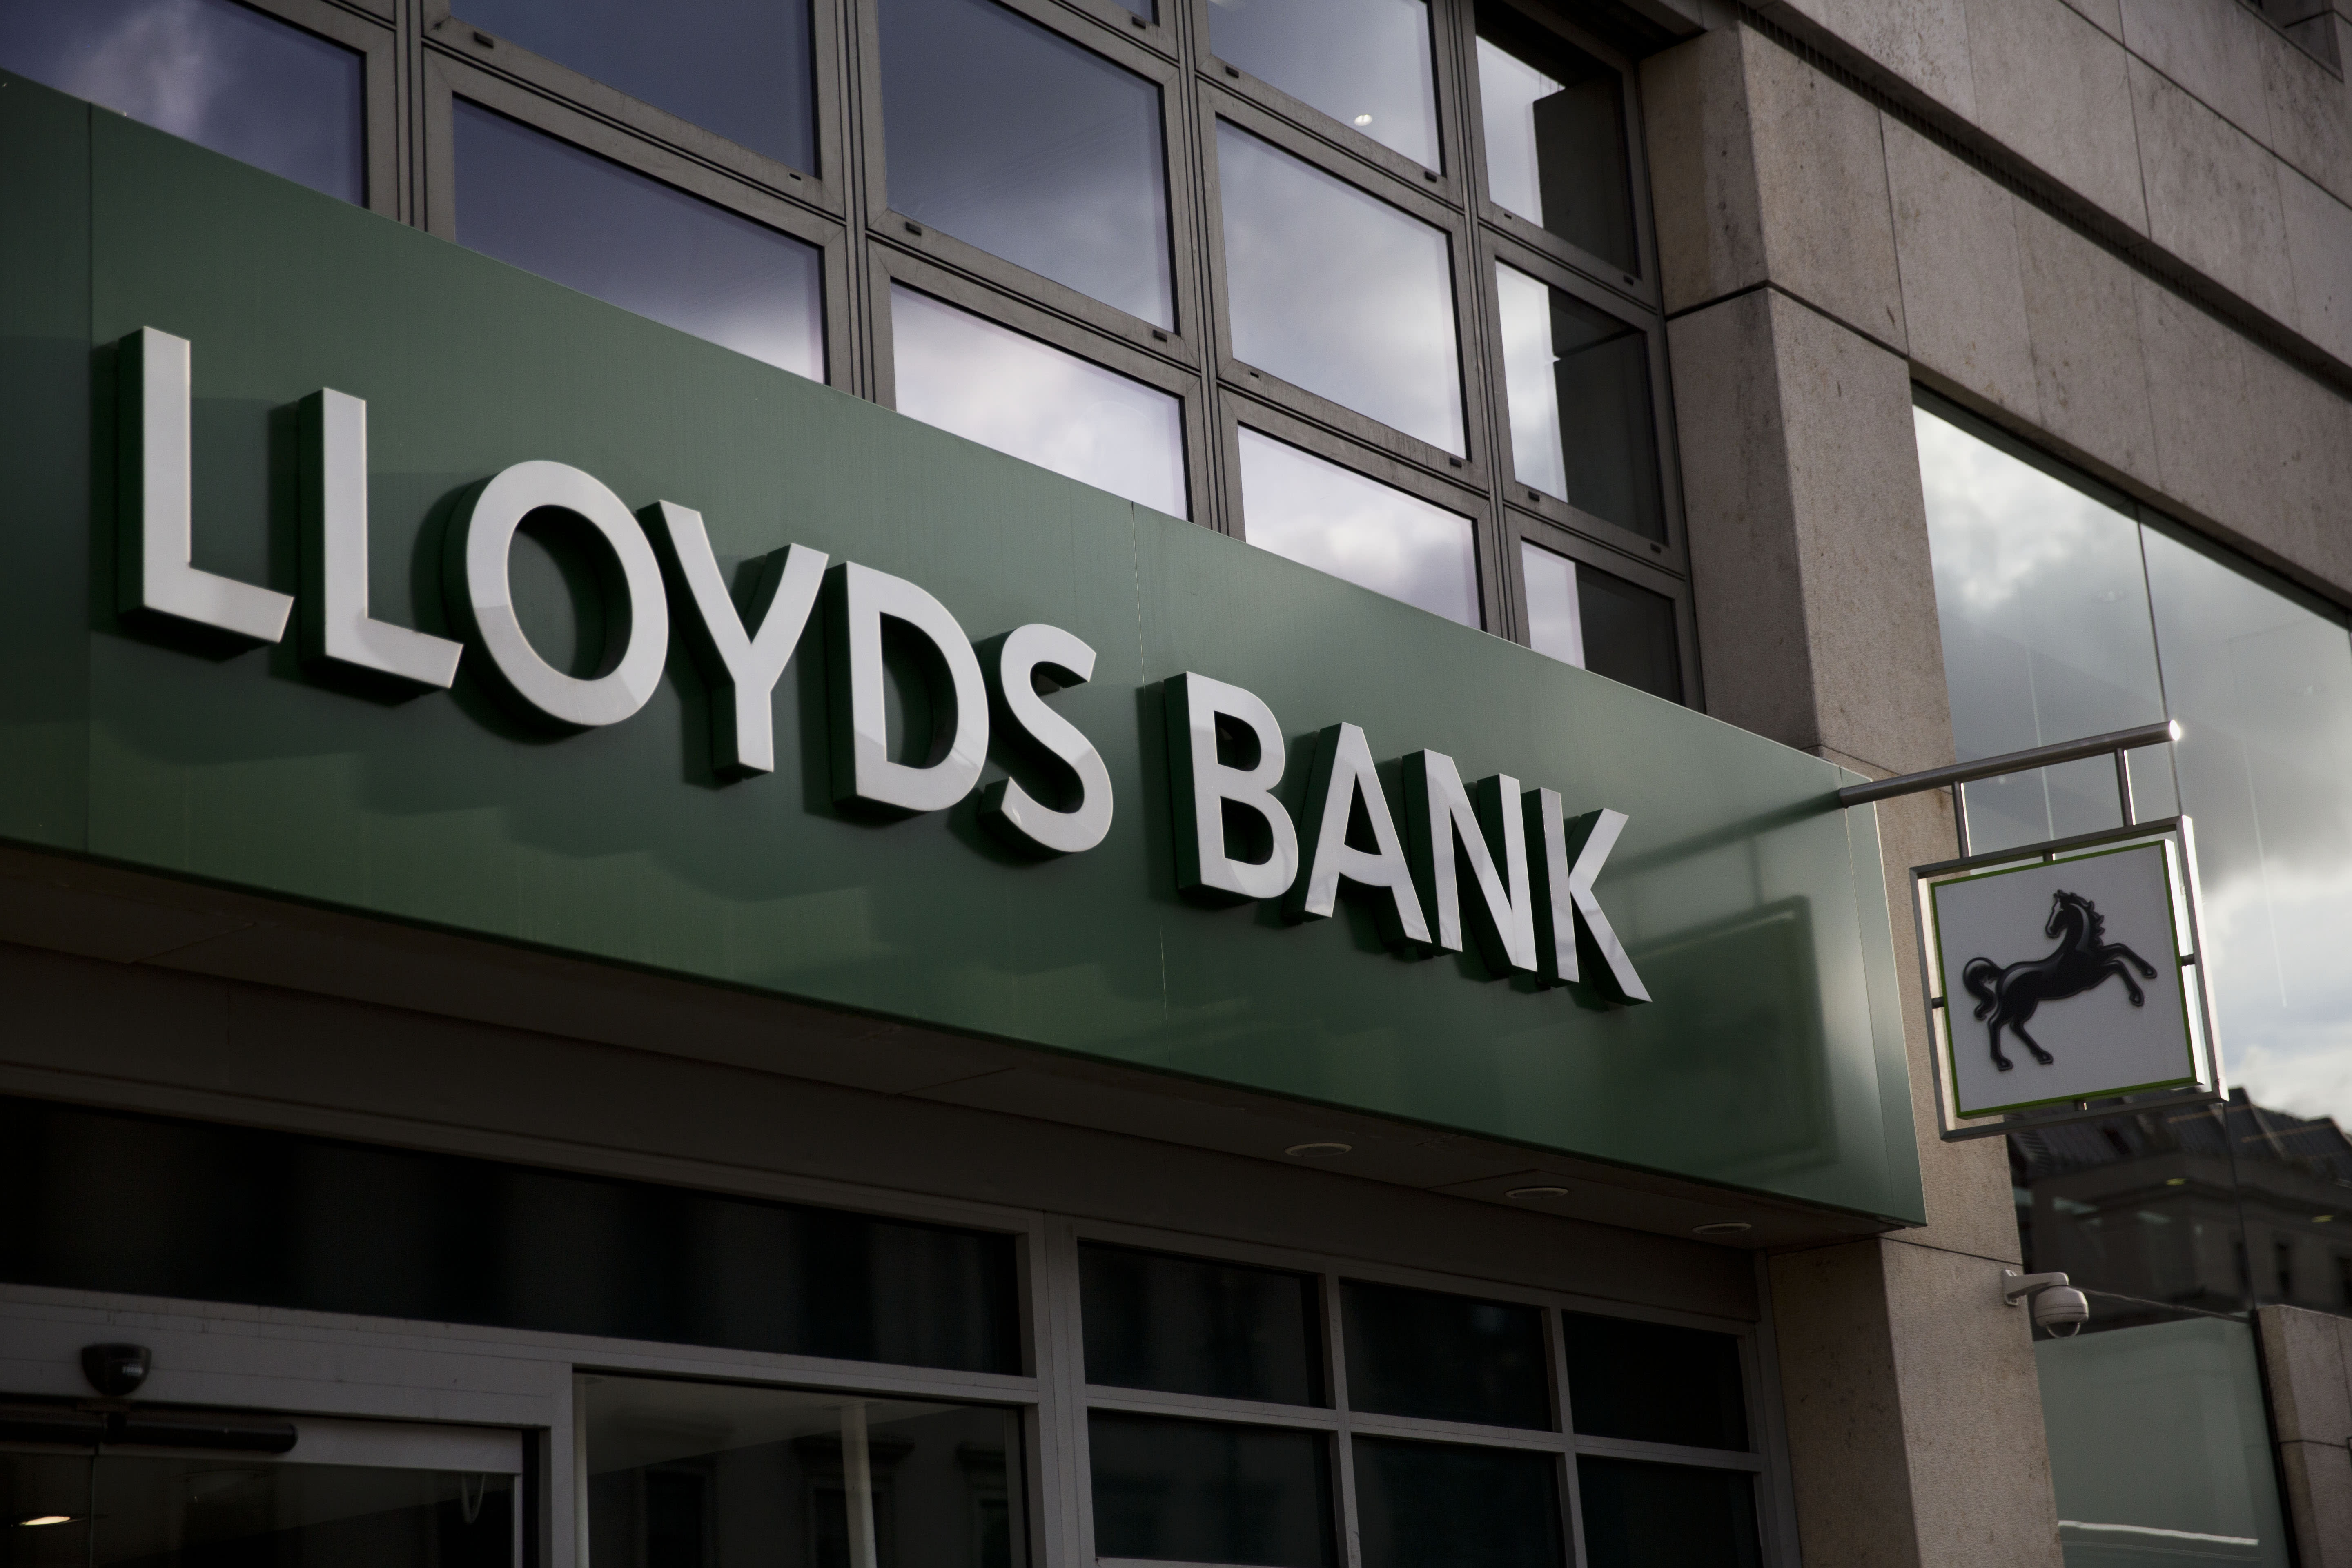 Lloyds Bank 2019 Results: Profit Dives 26% On PPI Charges